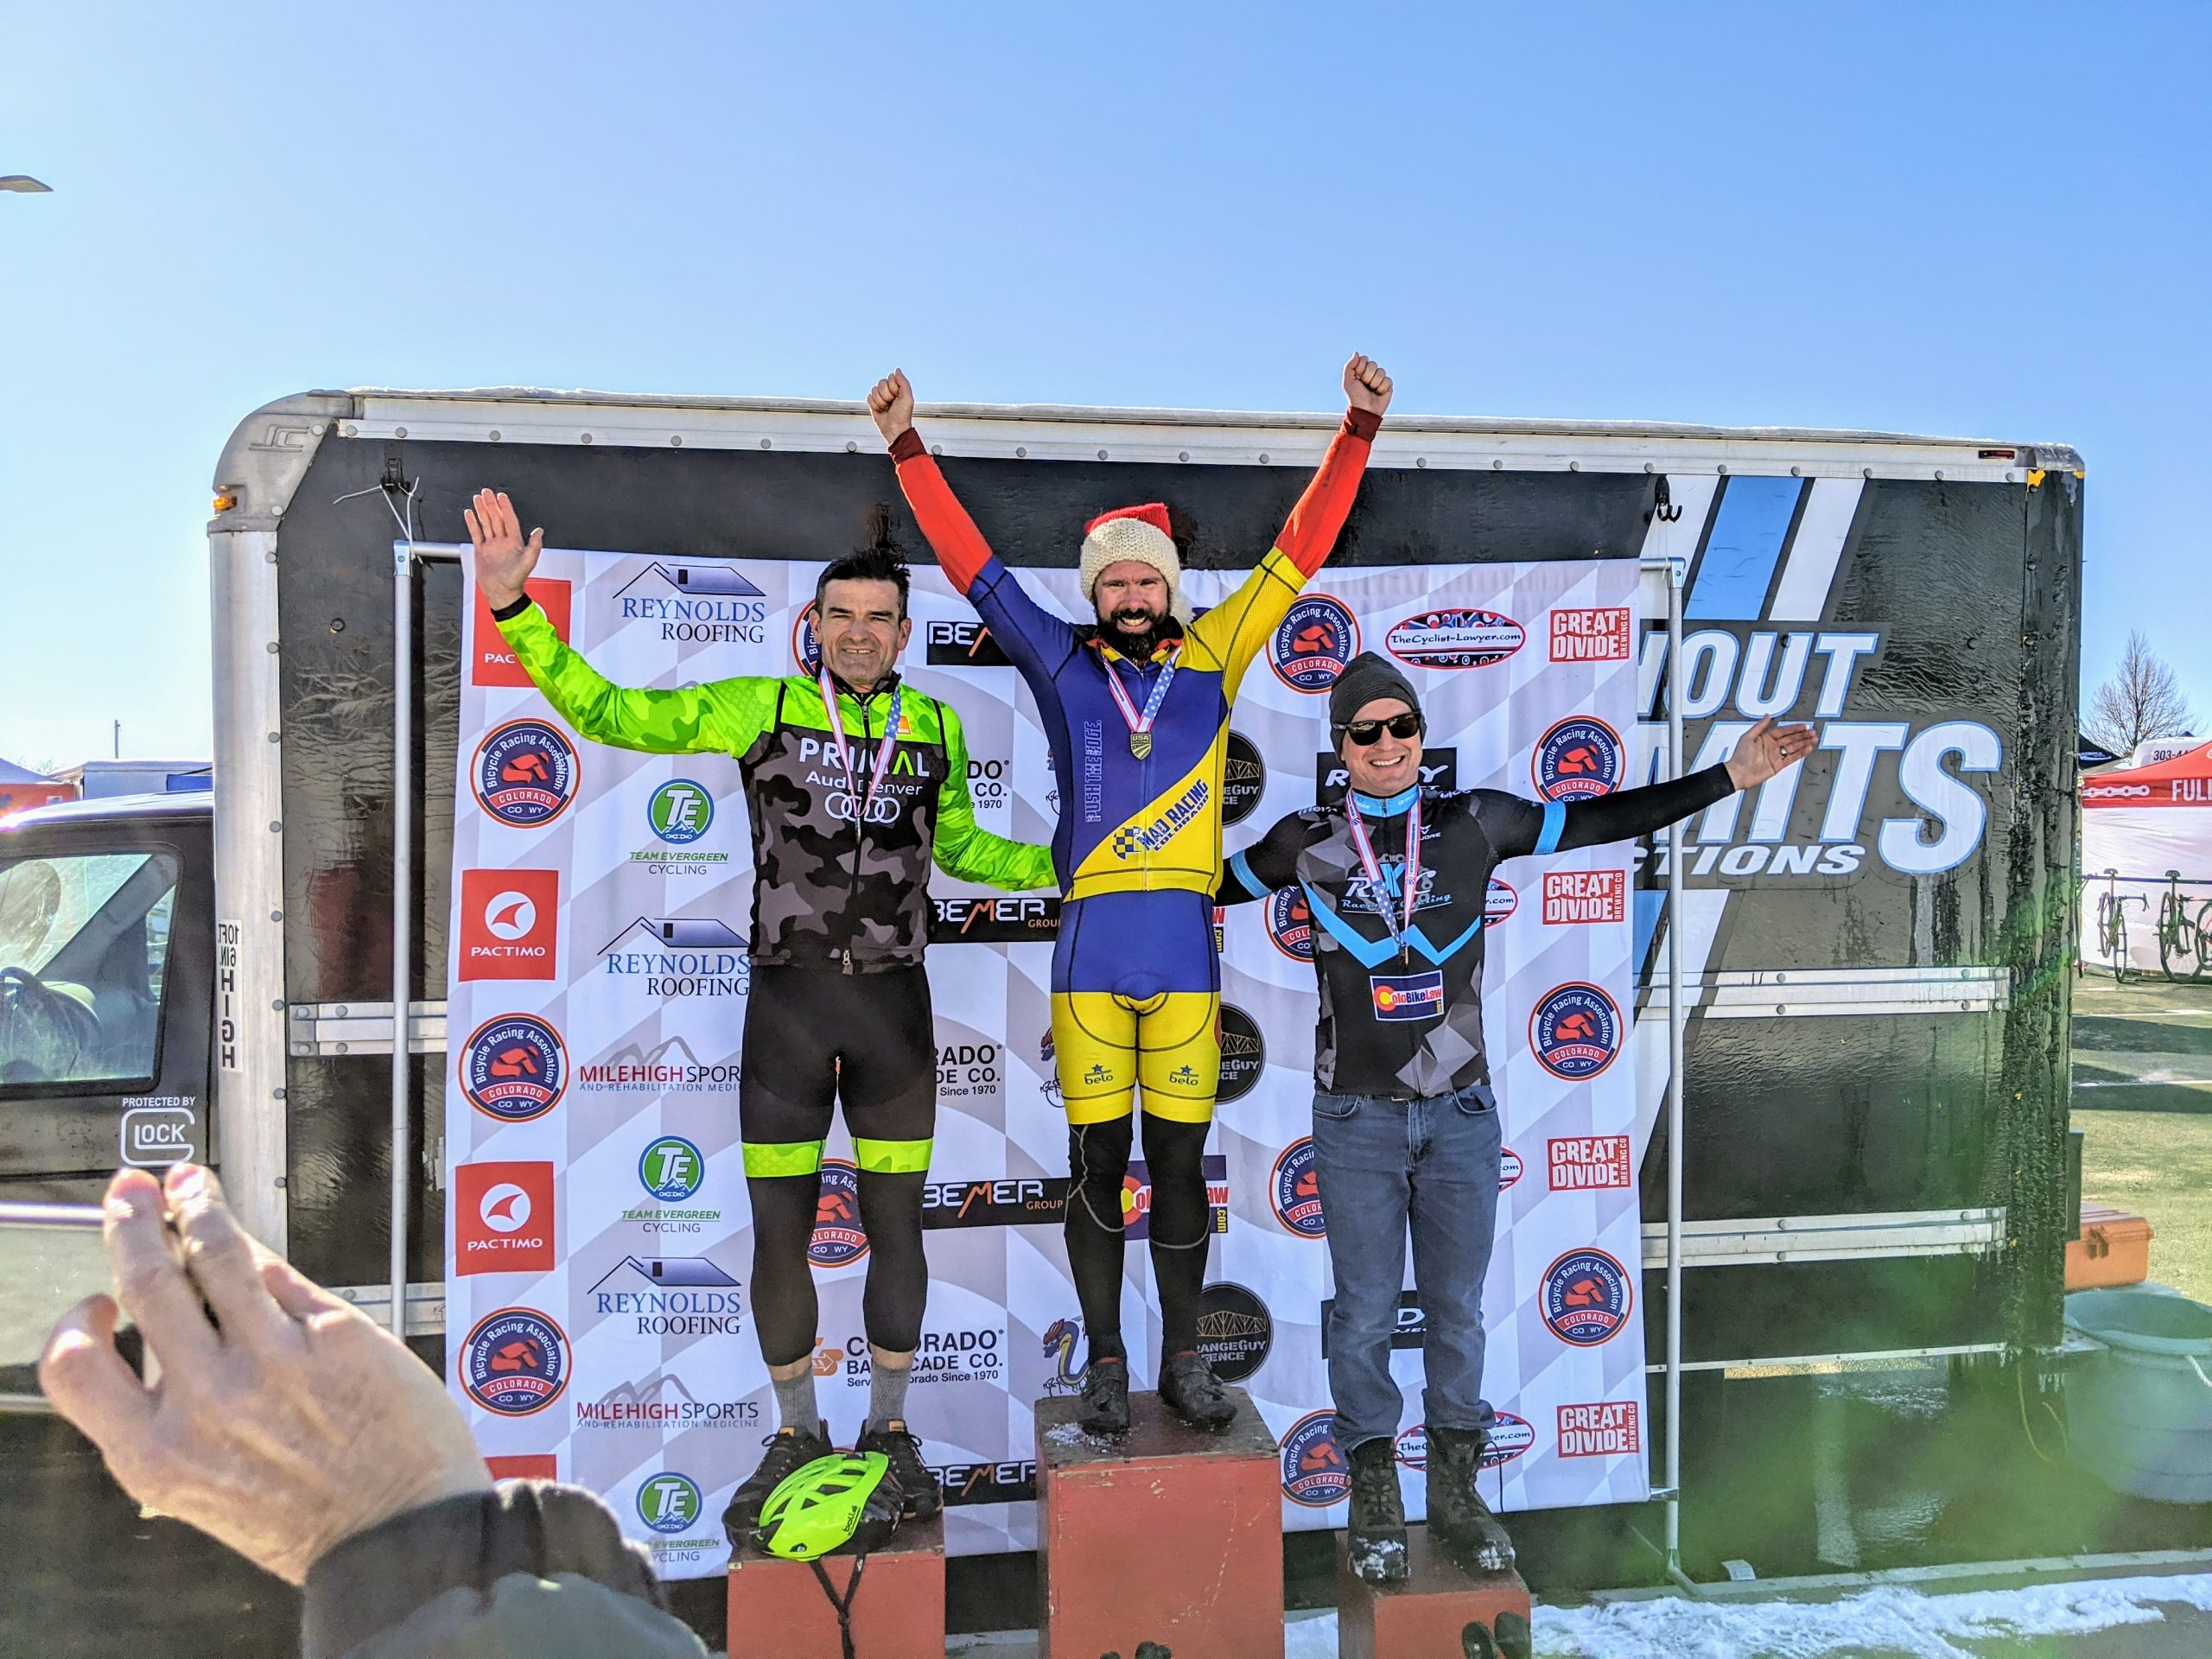 Colorado State Championship Cat 4 40+ Podium